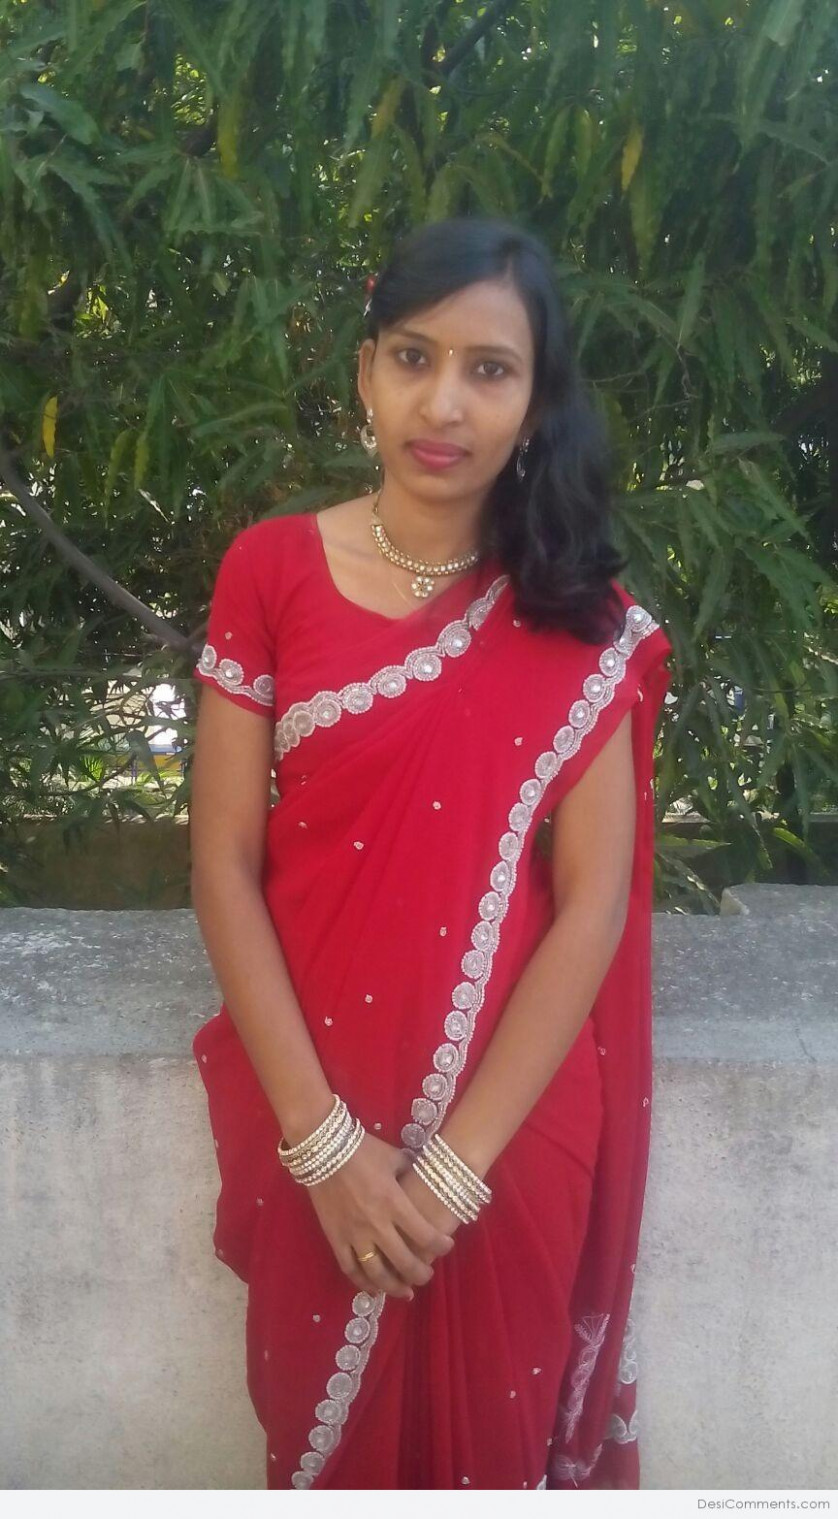 Beautiful Girl In Saree - DesiComments.com